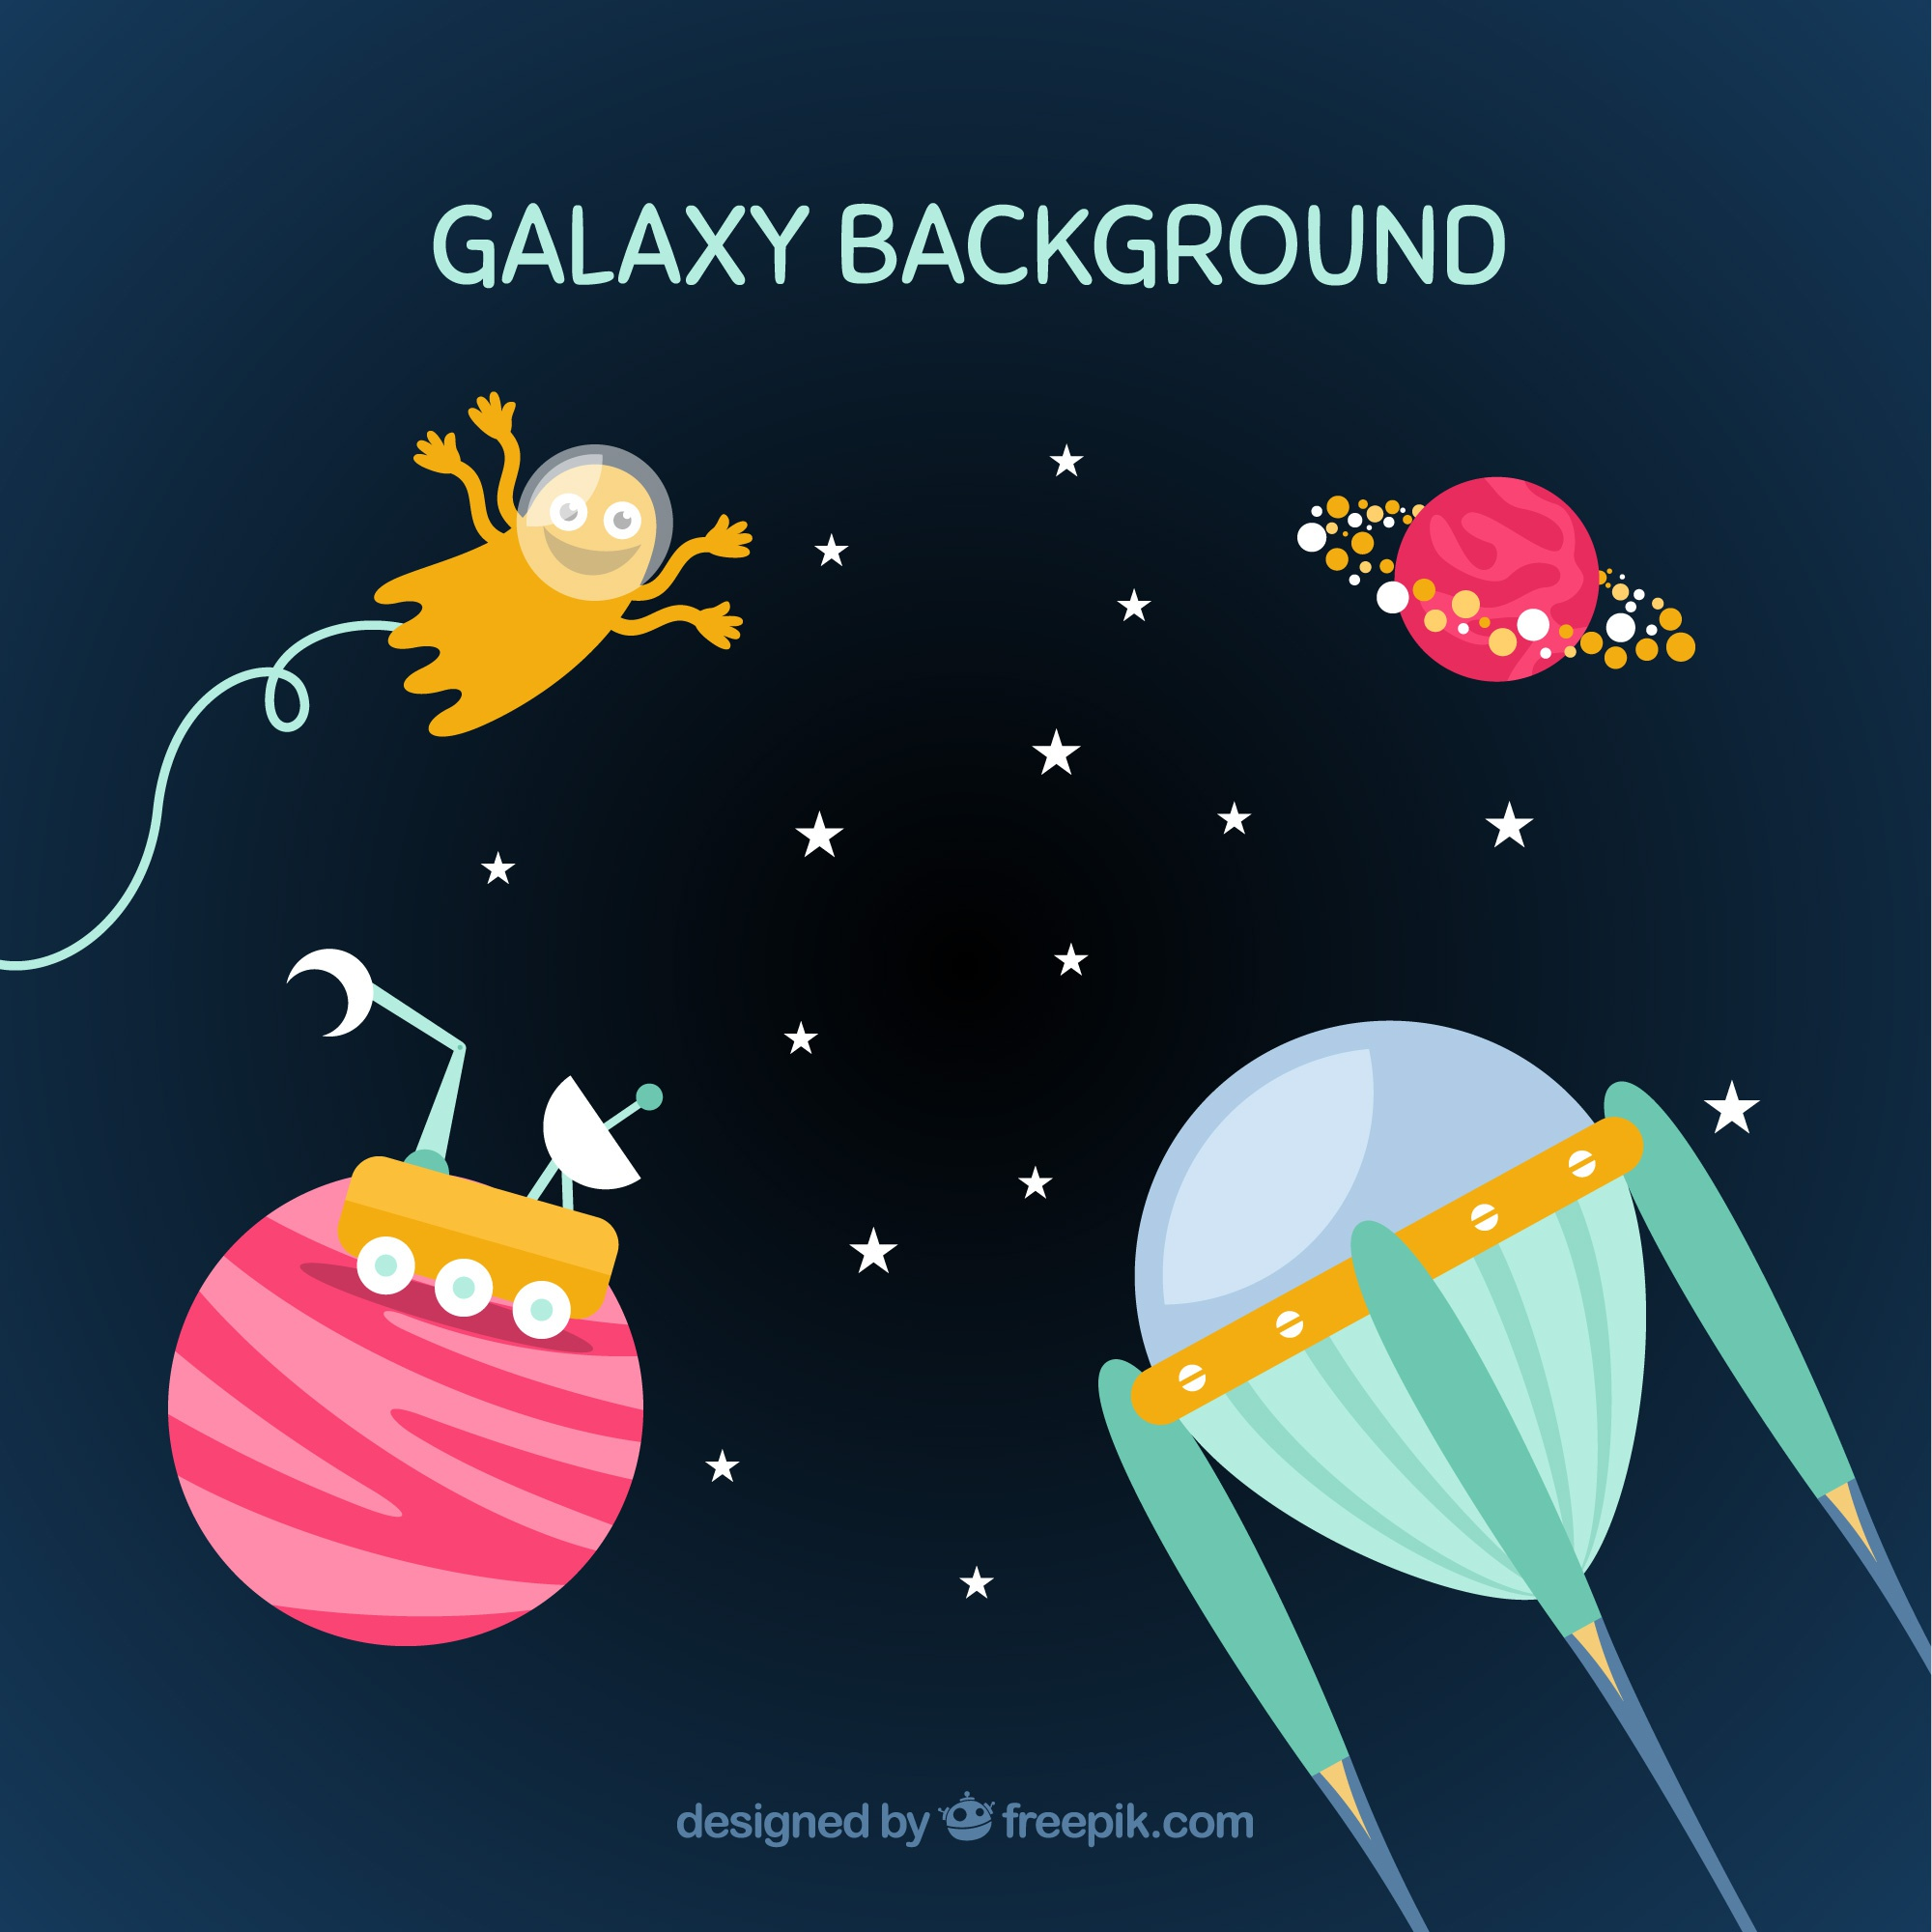 Background with space elements in flat design